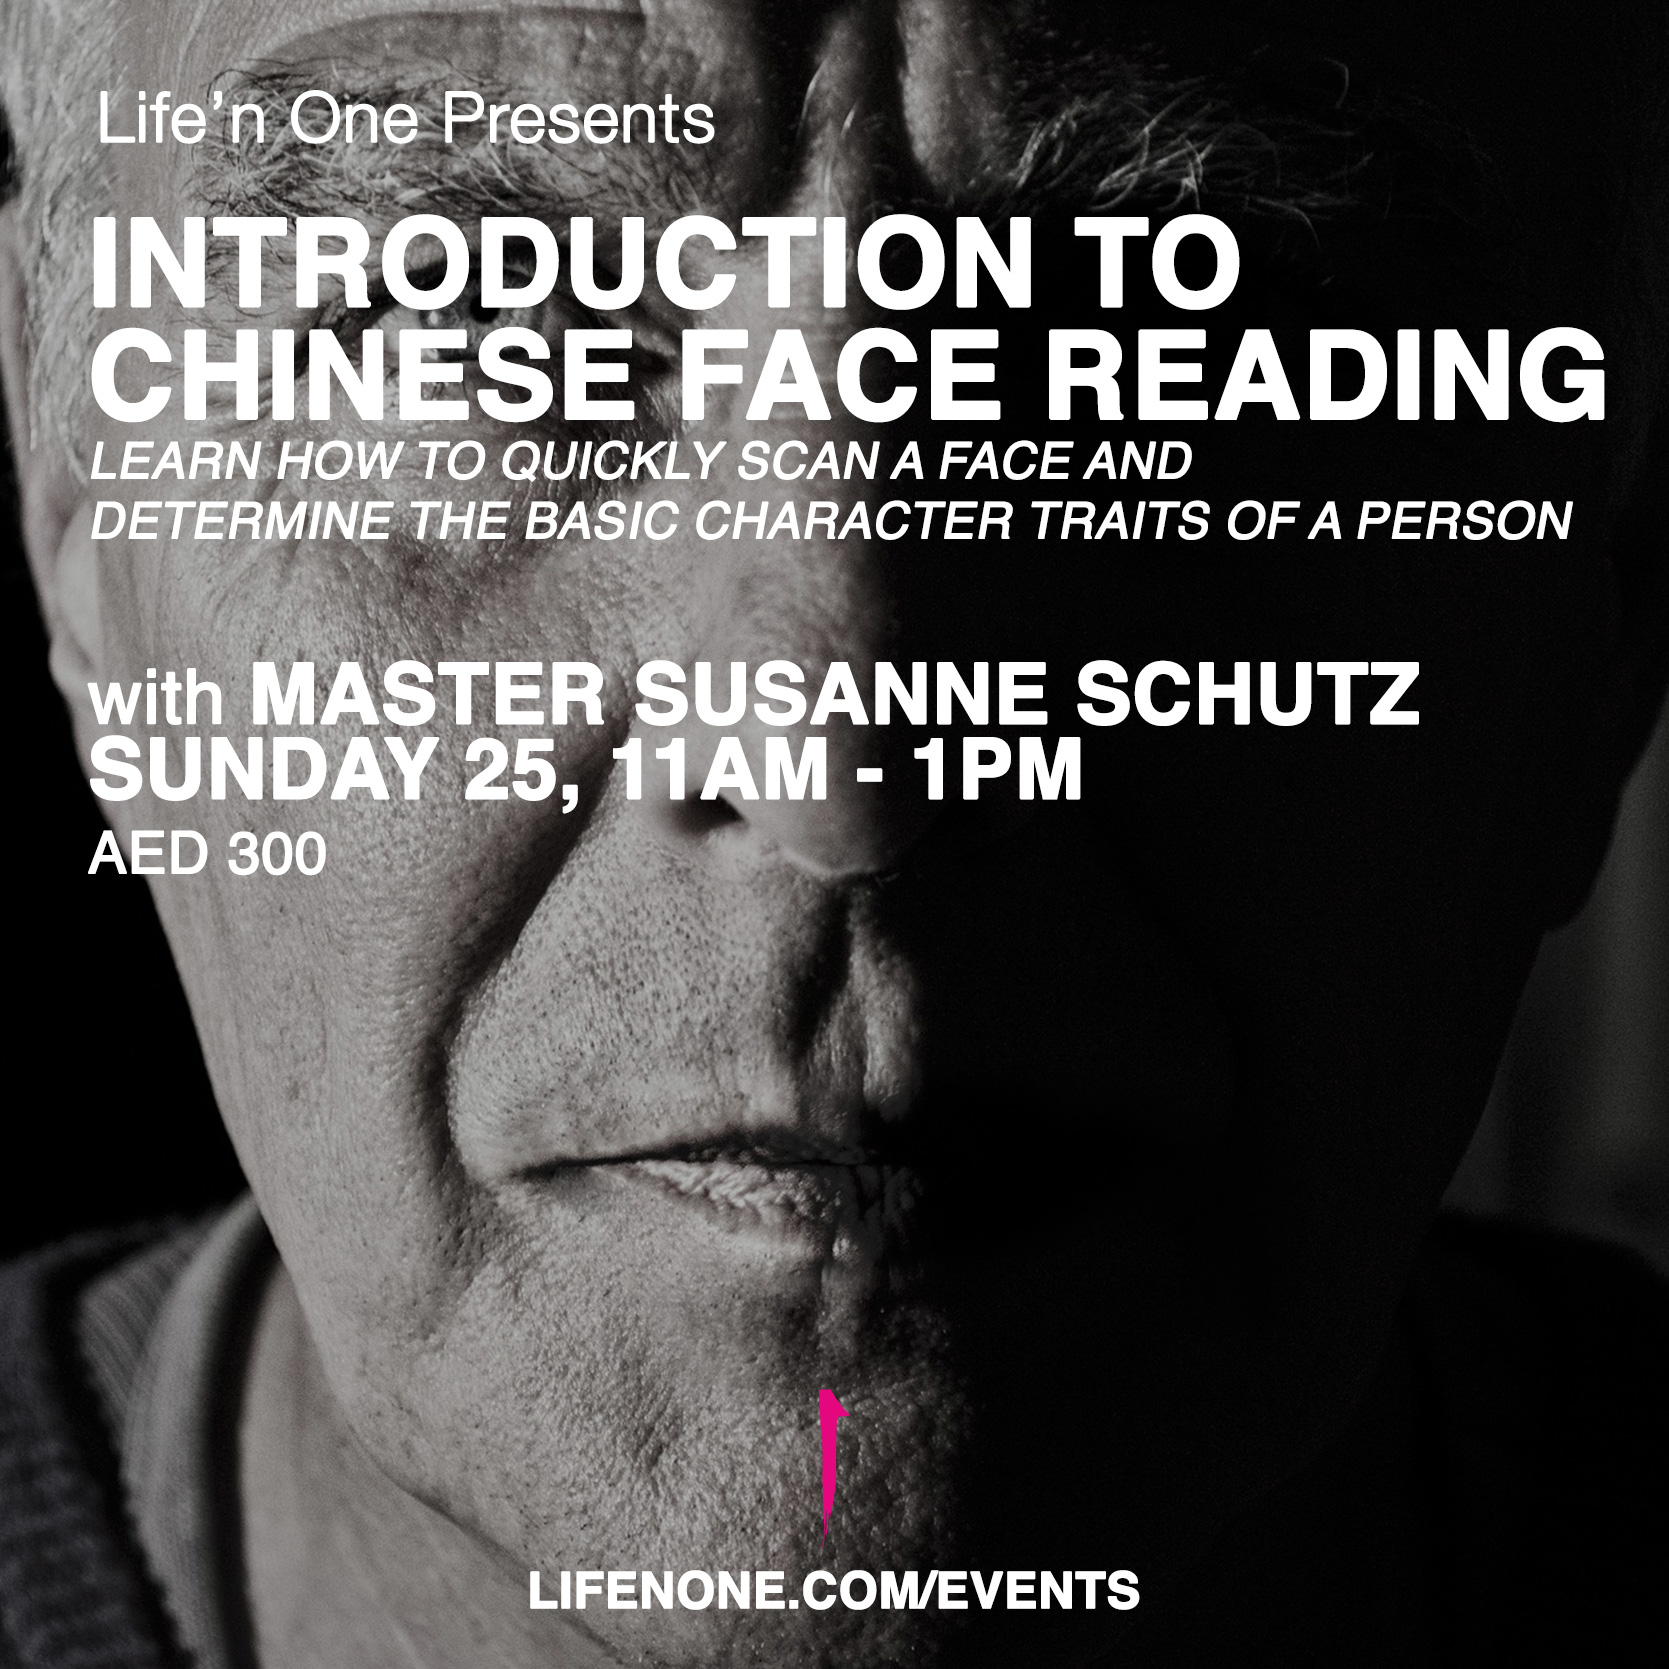 Introduction to Chinese Face Reading with Master Susanne Schutz in Dubai